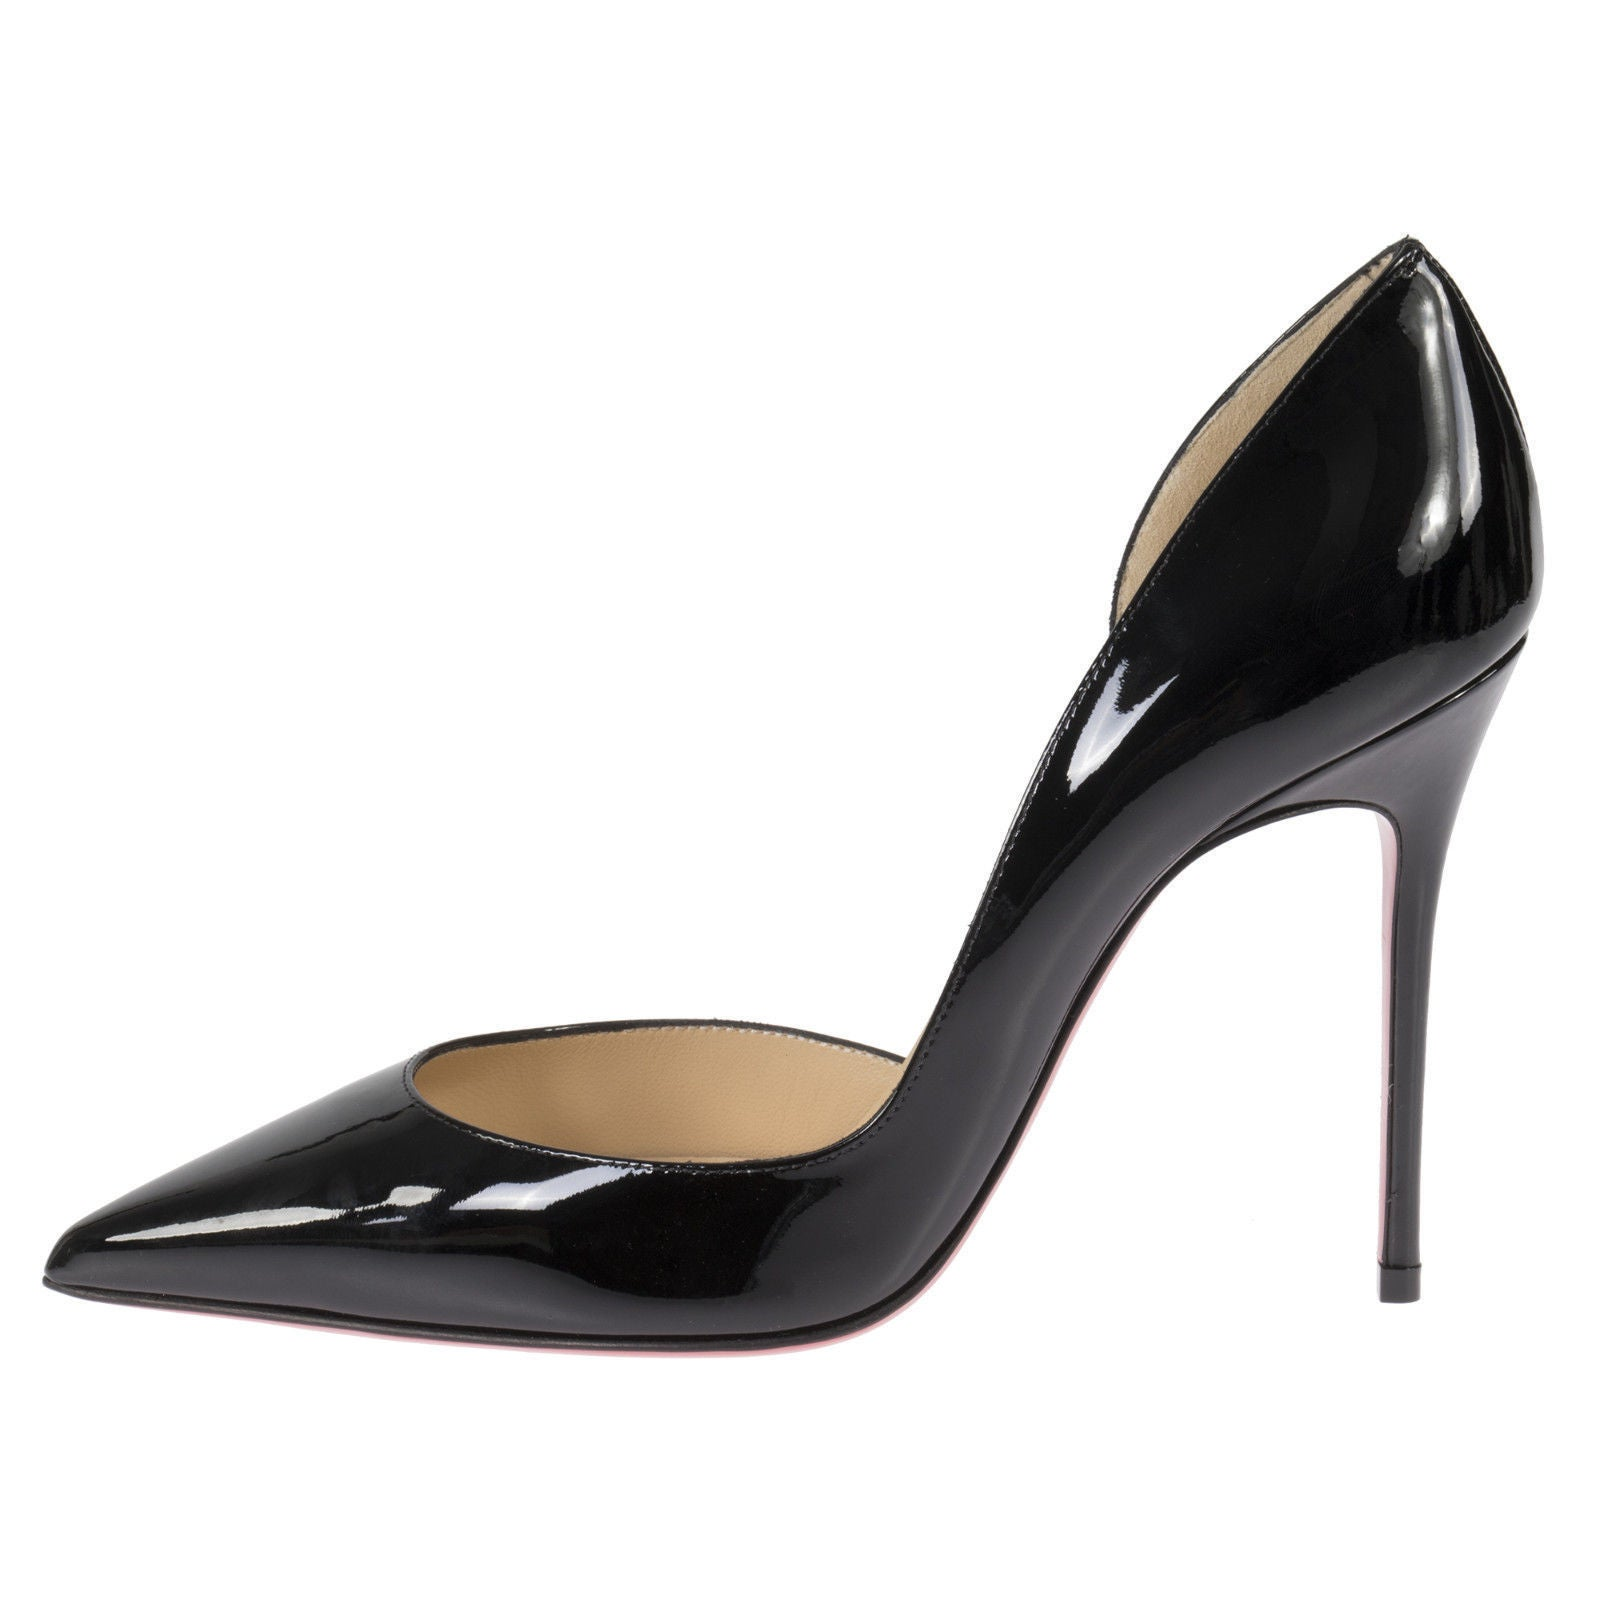 4c583bac91 Shop Christian Louboutin Iriza Black Patent d'Orsay Shoes - Free Shipping  Today - Overstock - 14325896